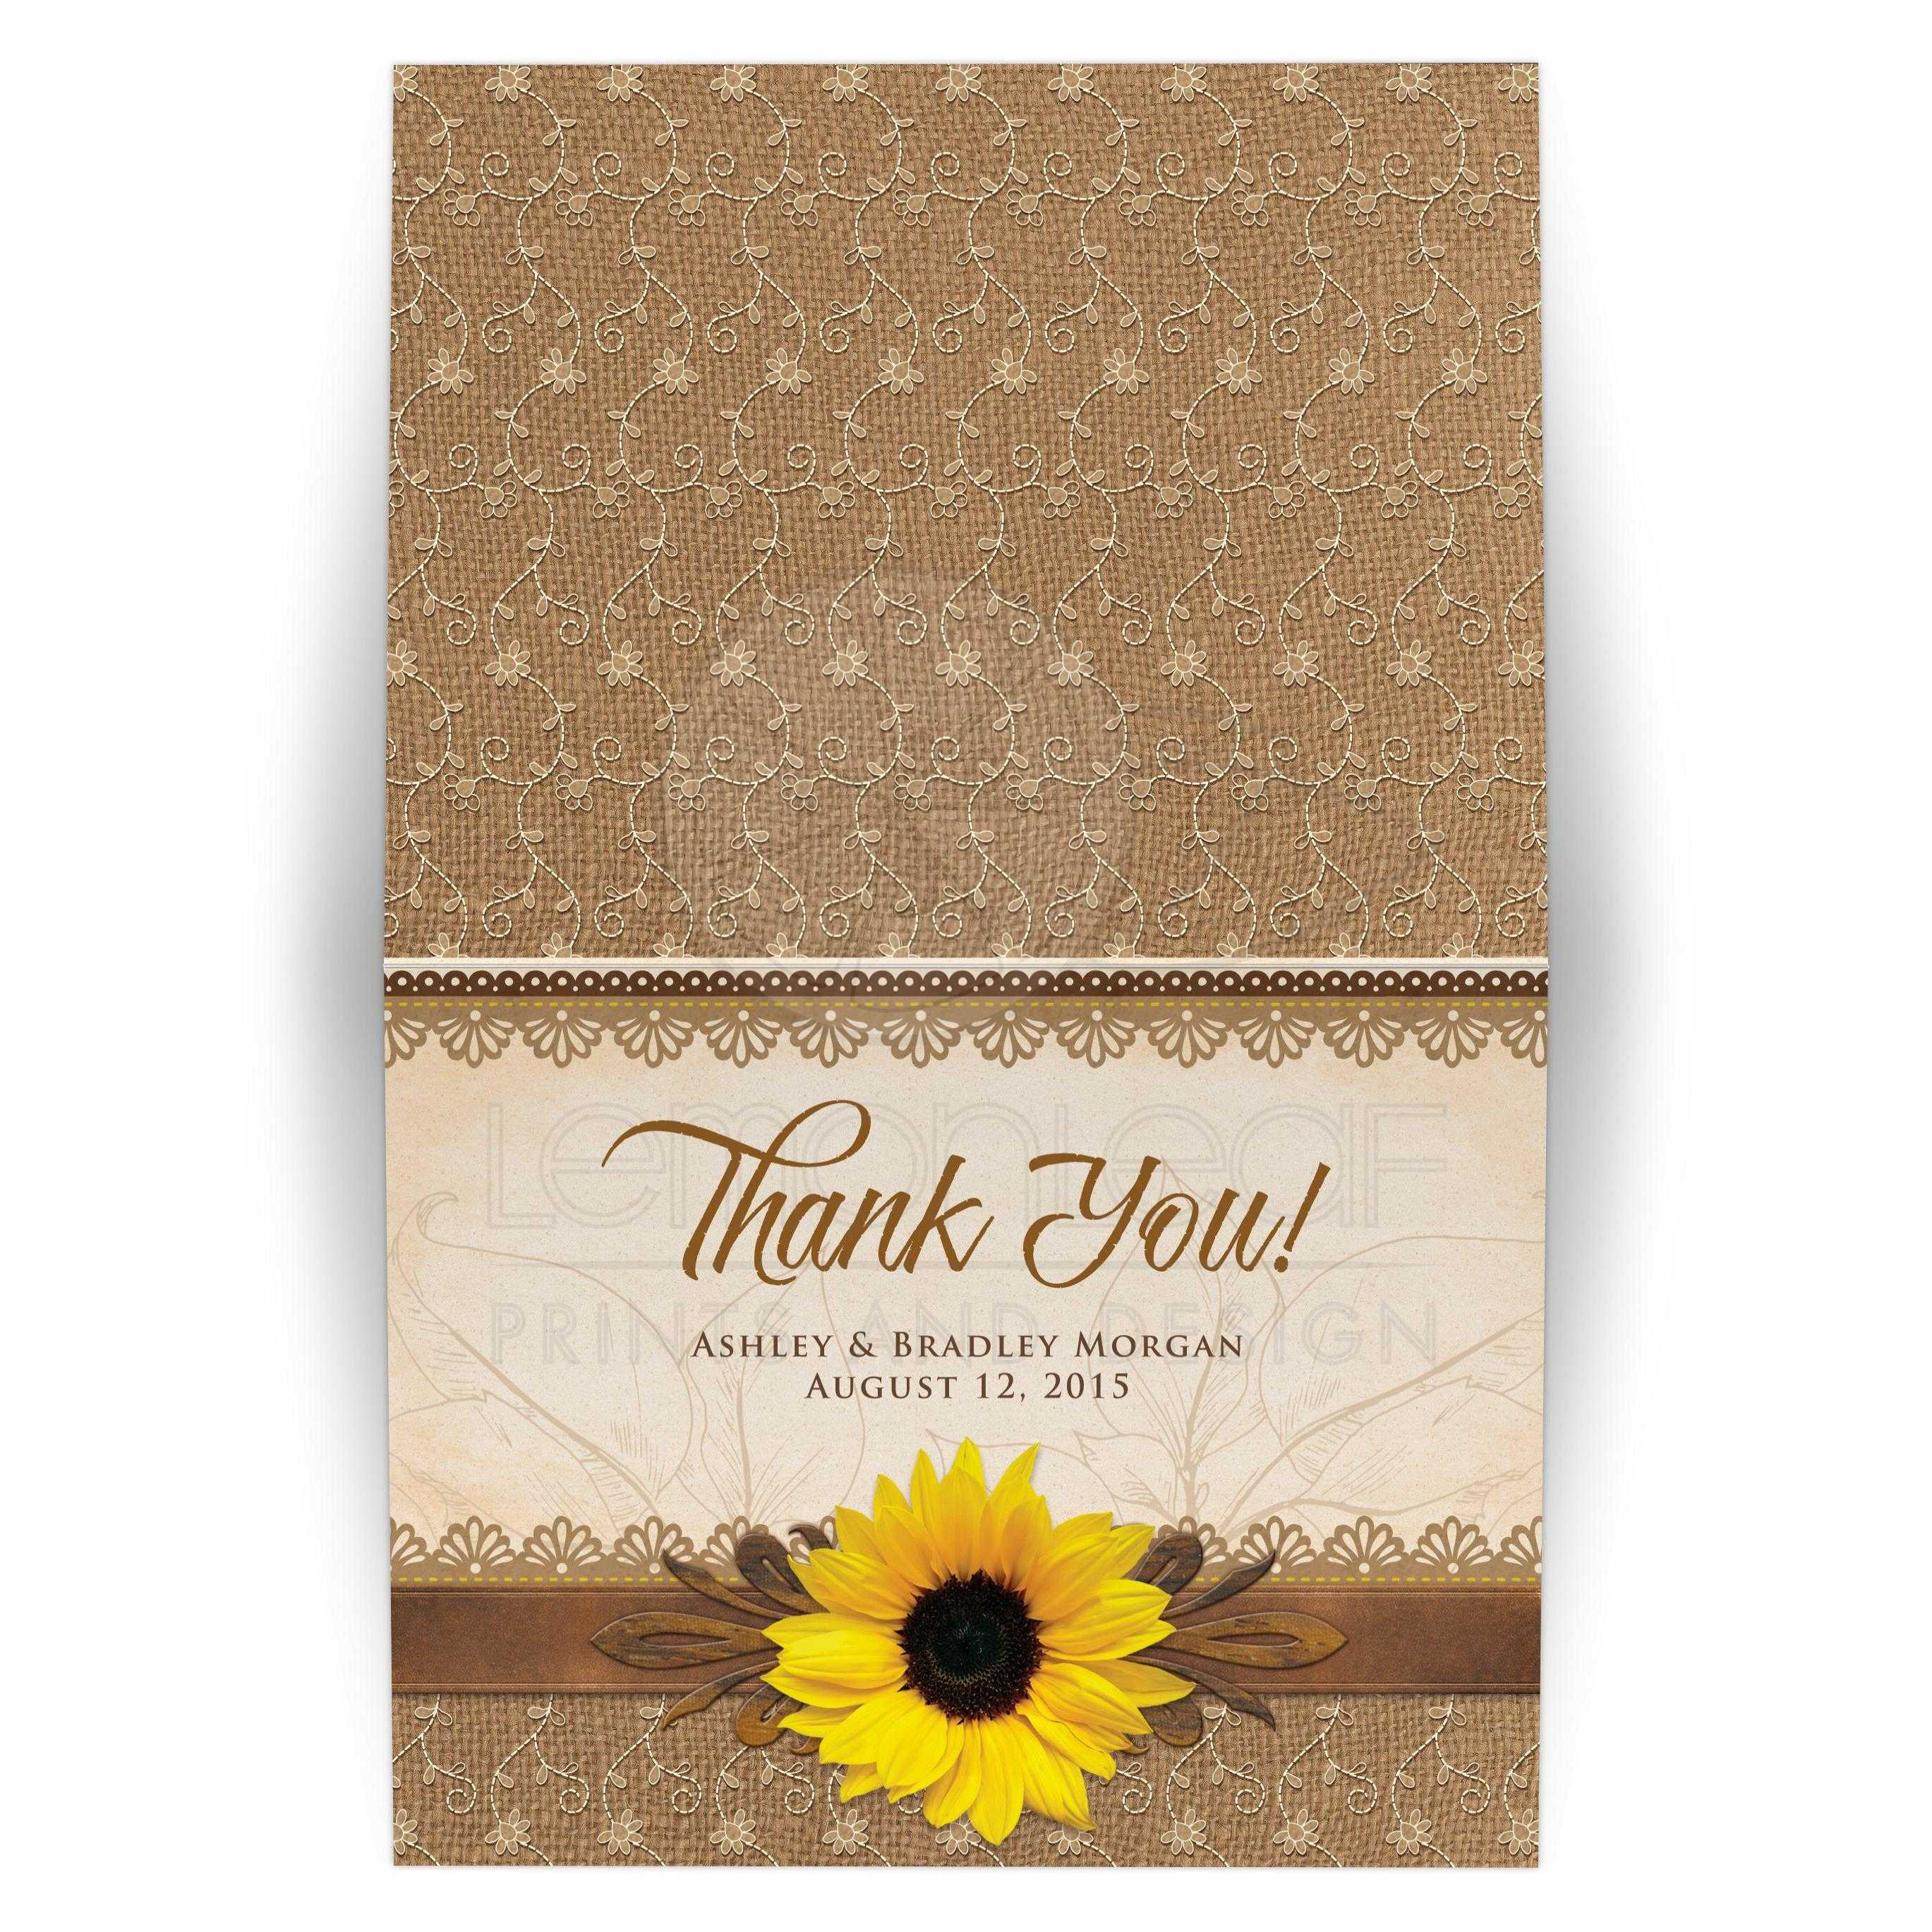 Rustic Sunflower Wedding Thank You Card Burlap Lace Wood